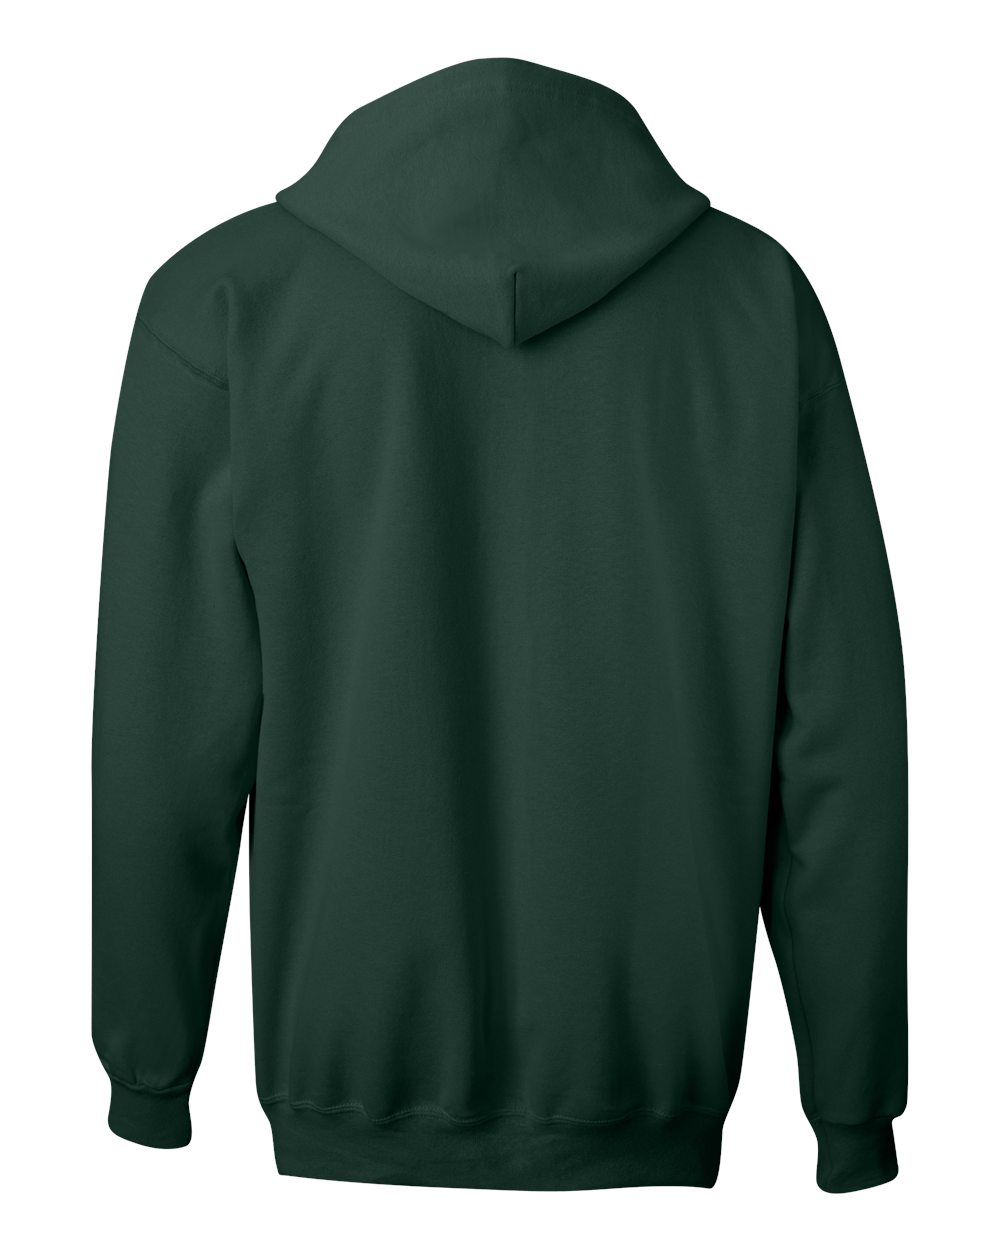 Hanes-Mens-Blank-Ultimate-Cotton-Full-Zip-Hooded-Sweatshirt-F280-up-to-3XL miniature 13